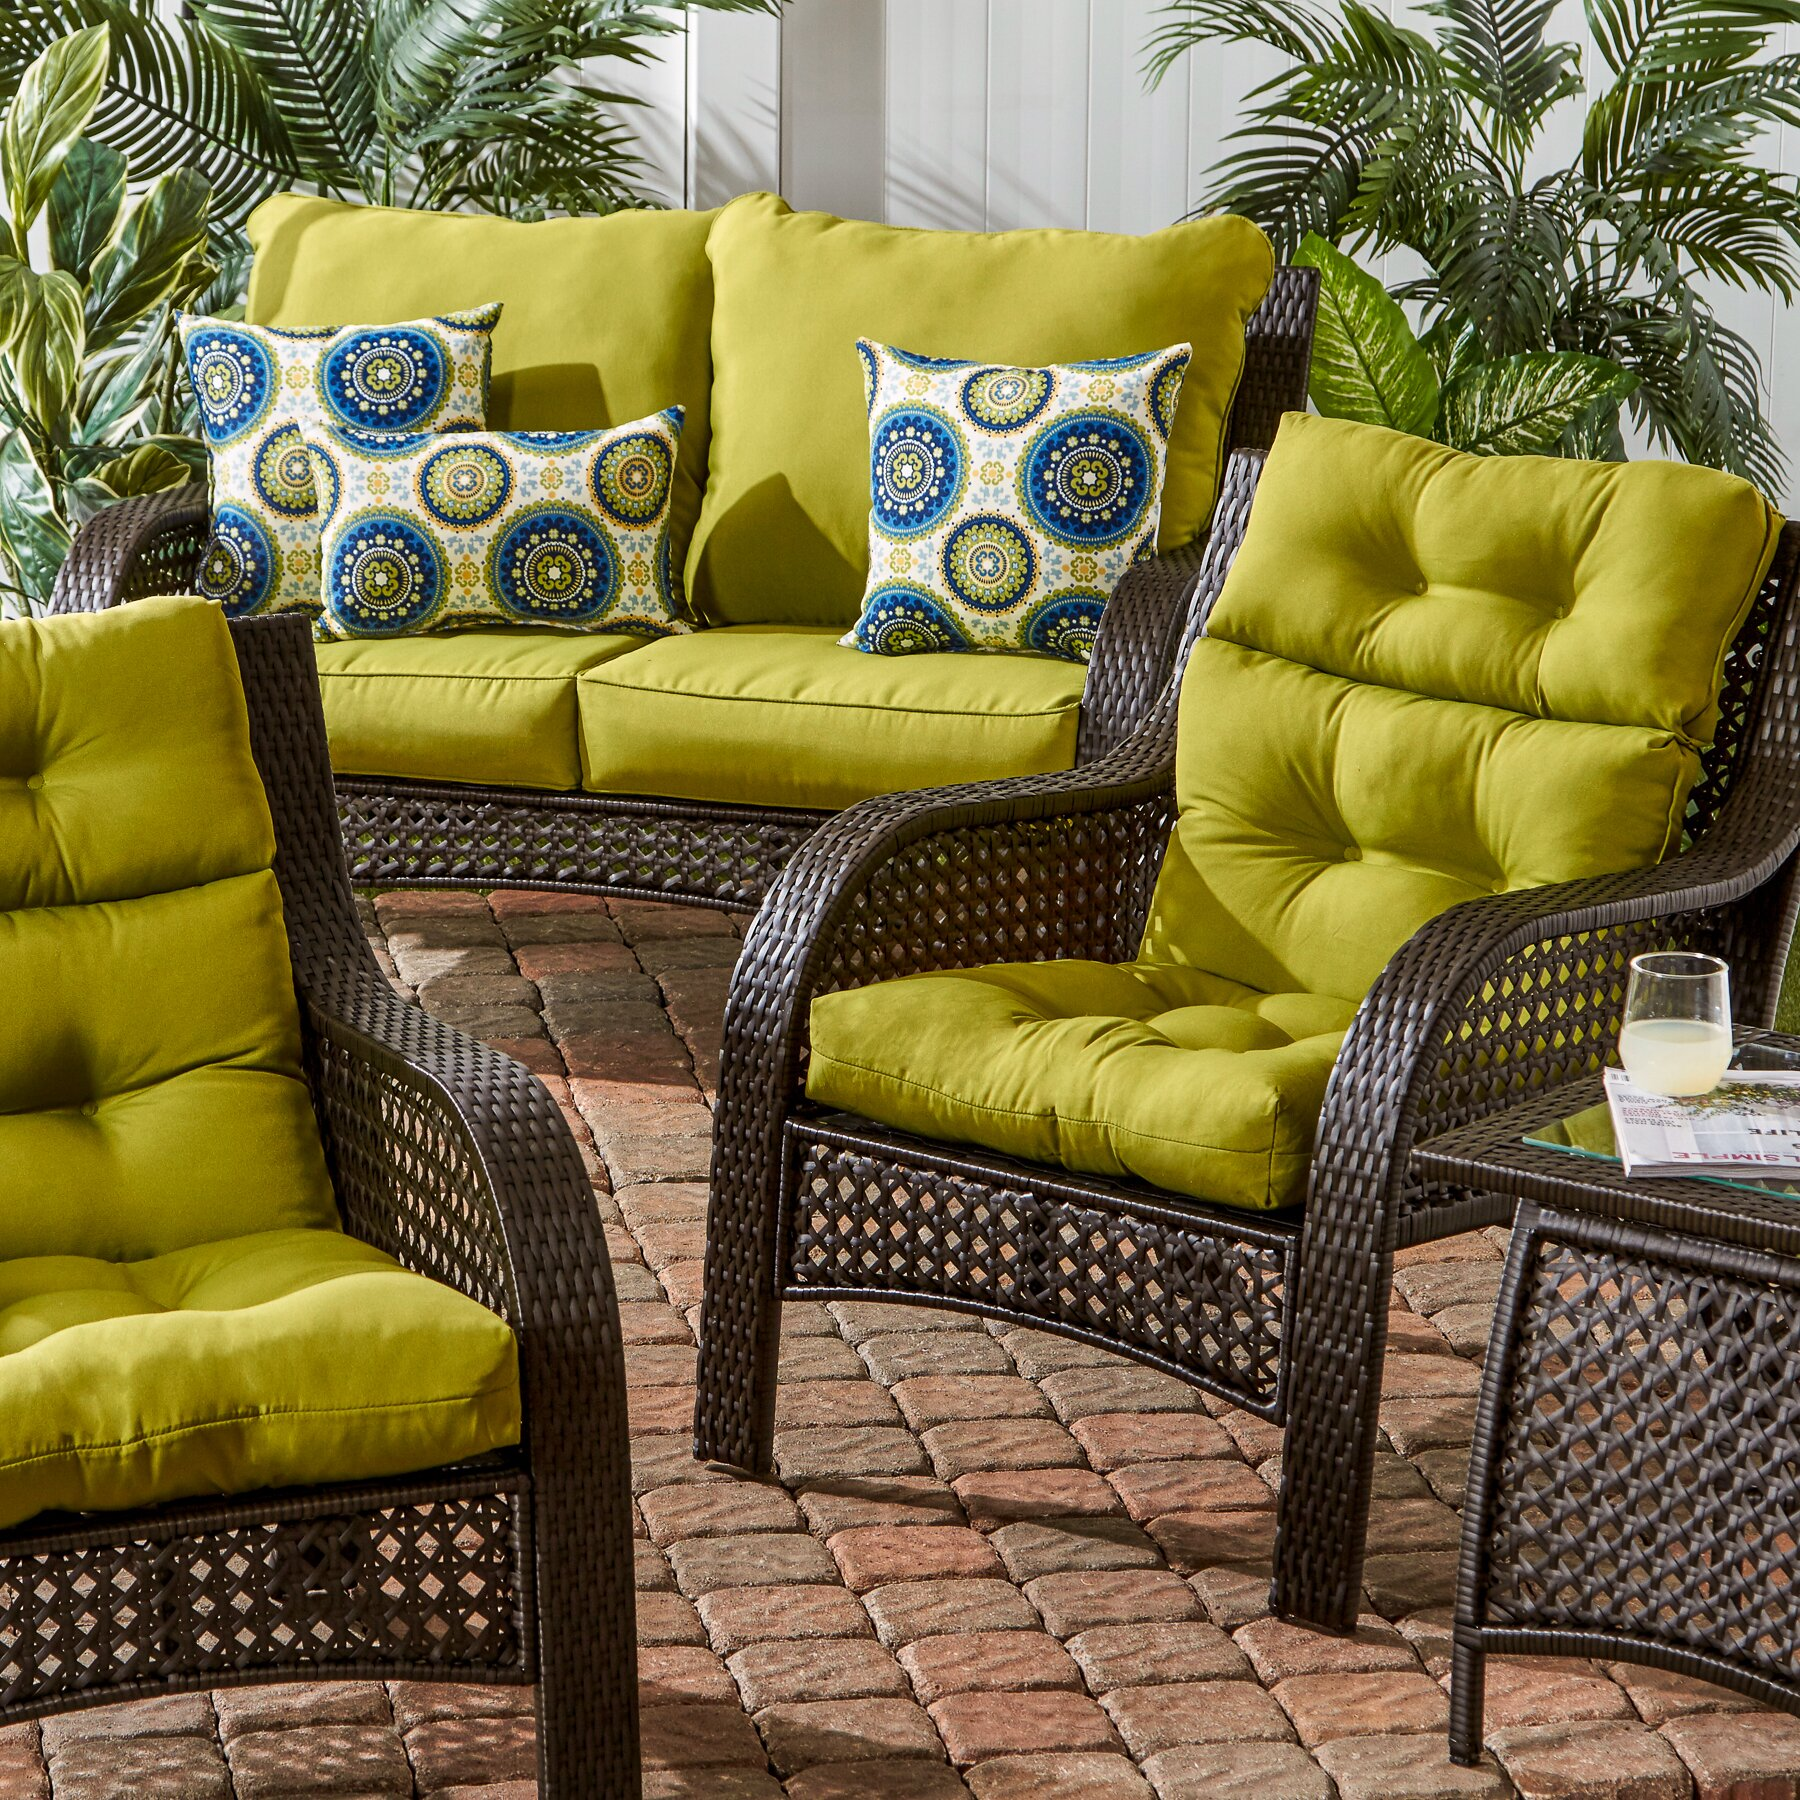 Patio Furniture Cushions: Darby Home Co Outdoor High Back Chair Cushion & Reviews